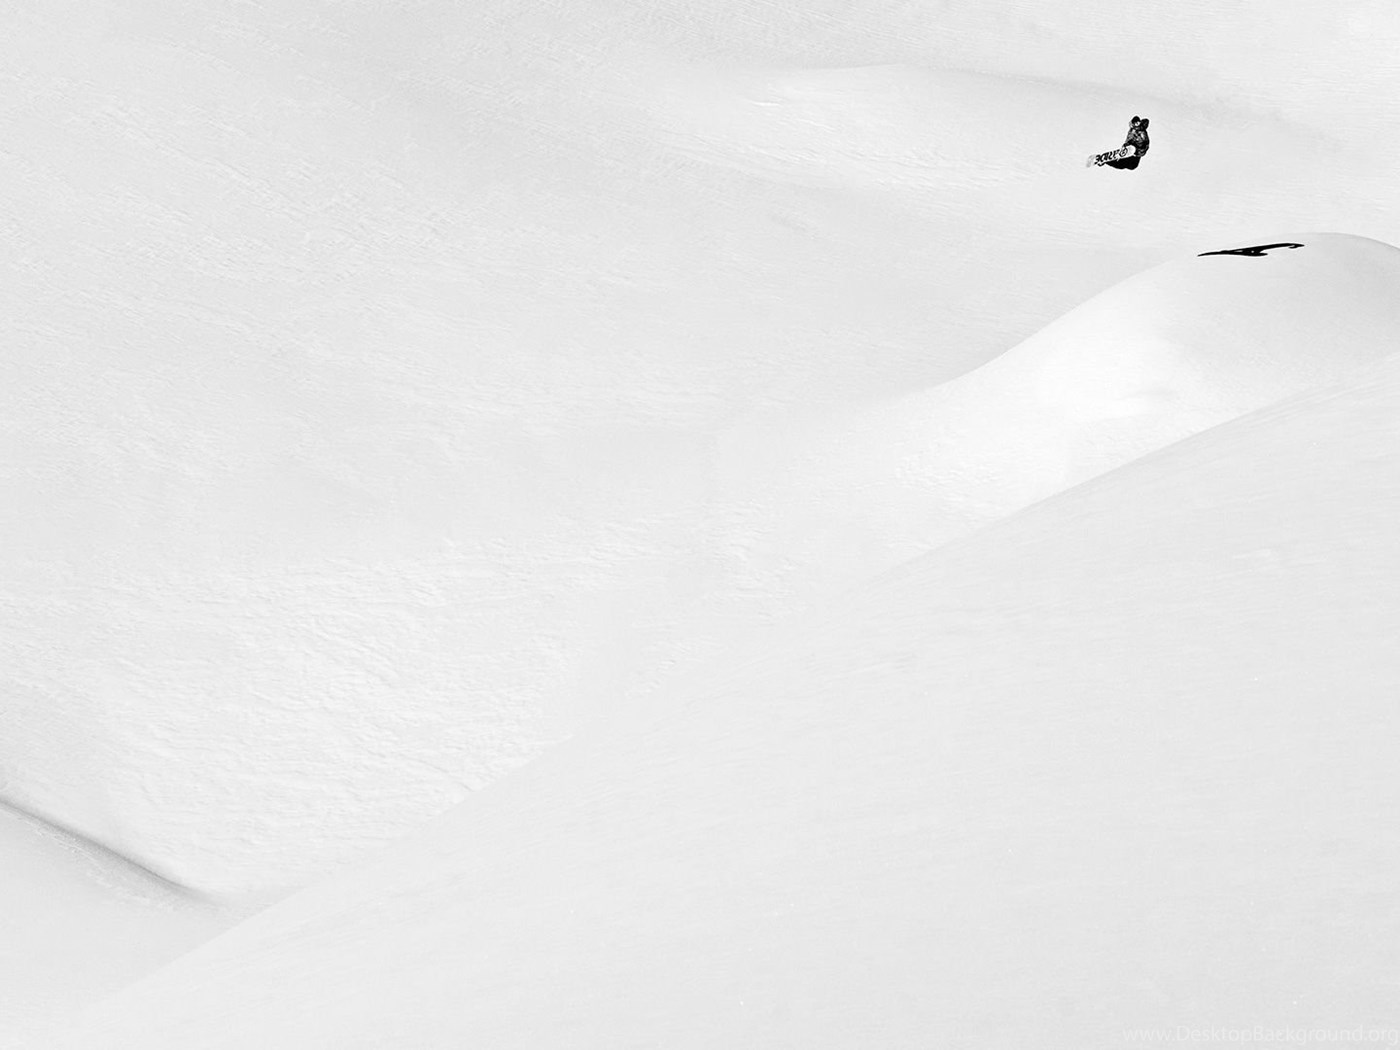 Snowboard Wallpaper: Marco Feichtner Makes The Most Of A Blank ...